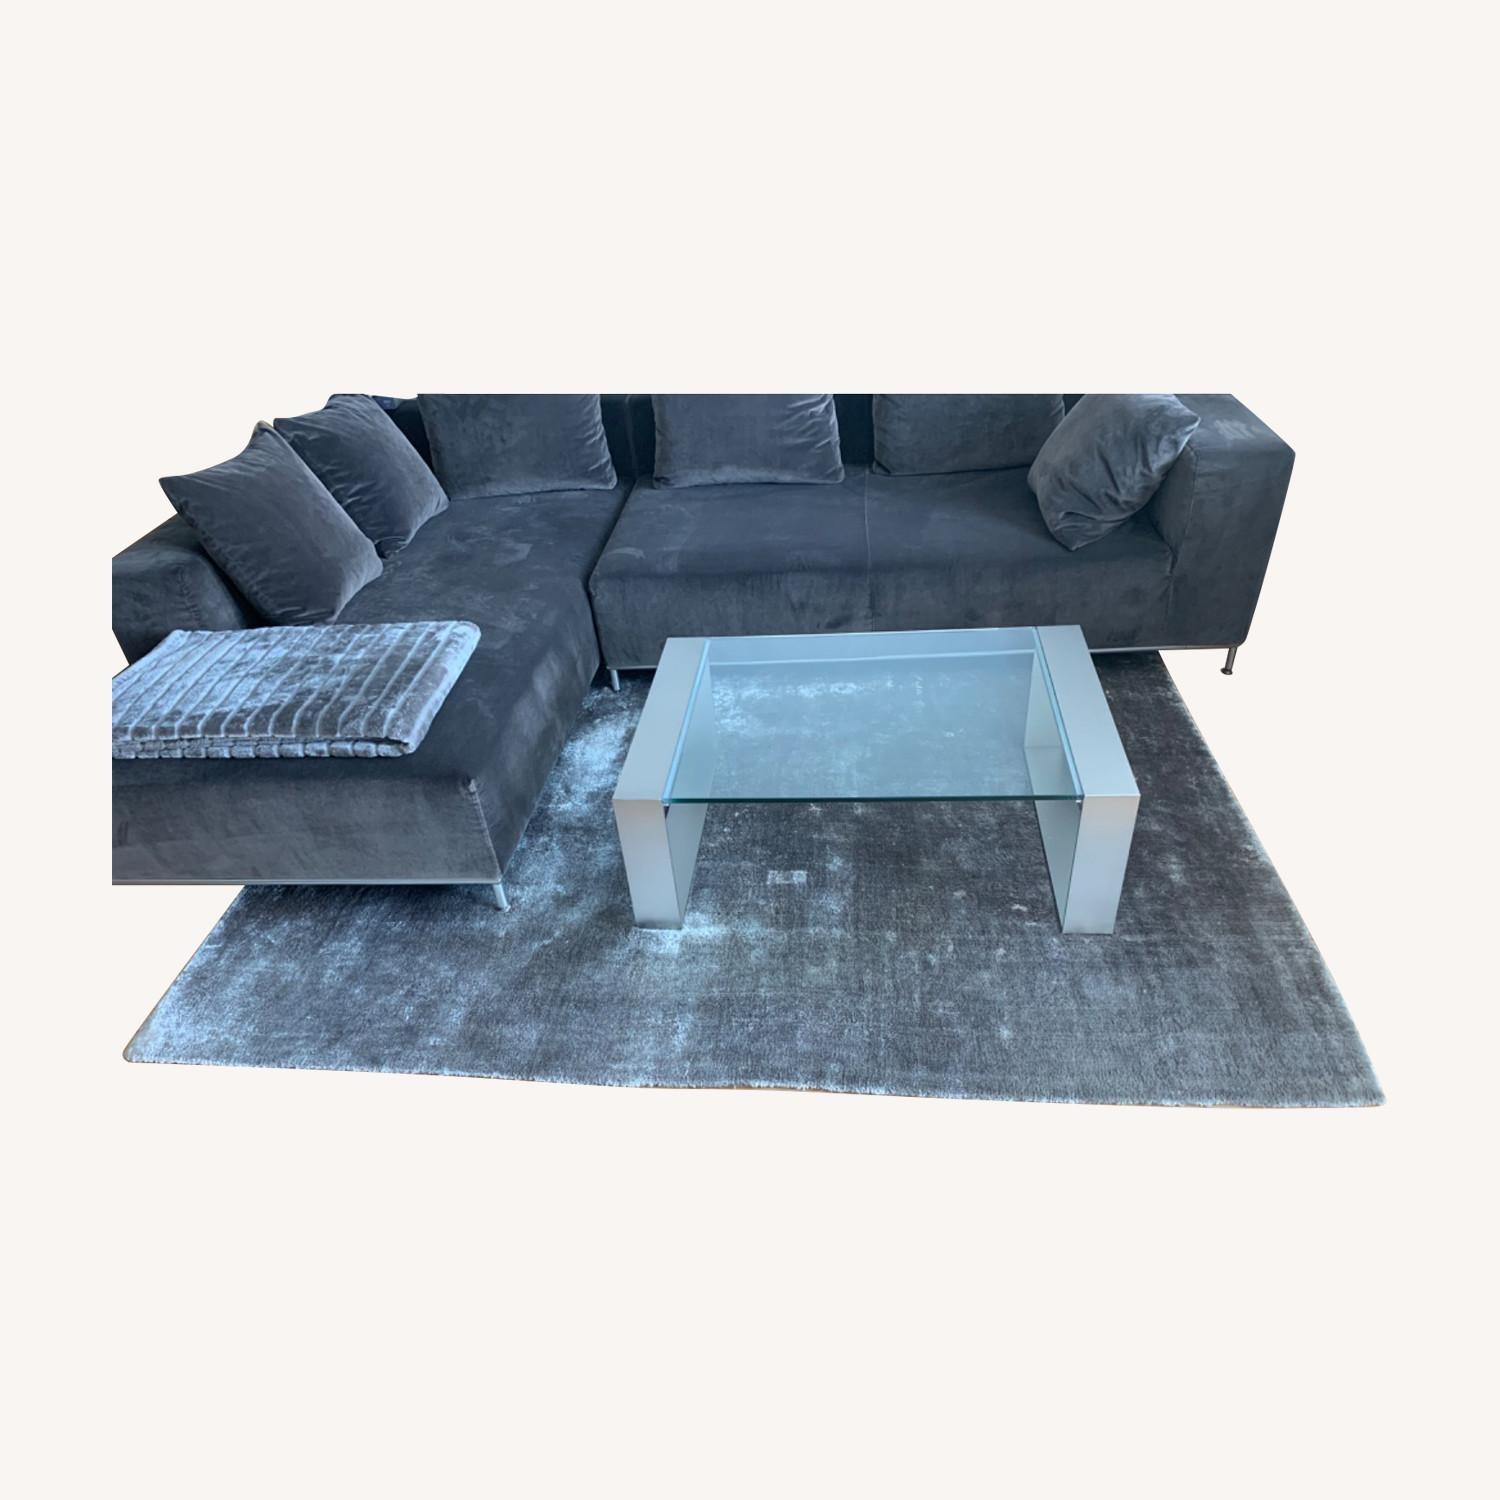 Lucens Rug by Linie Design - image-0